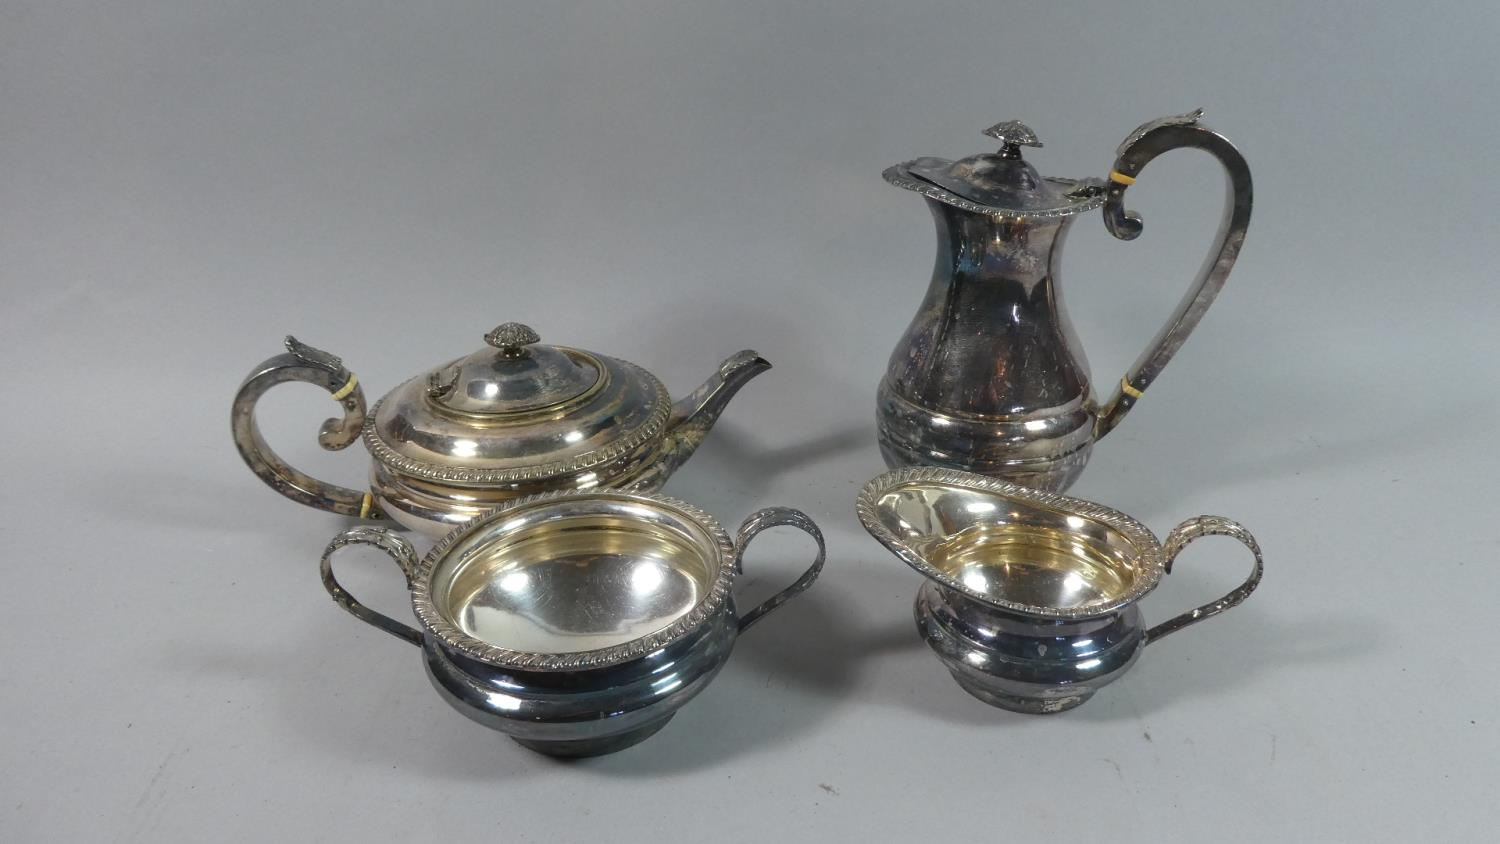 Lot 42 - A Silver Plated Three Piece Teaservice and an Unrelated Hot Water Jug